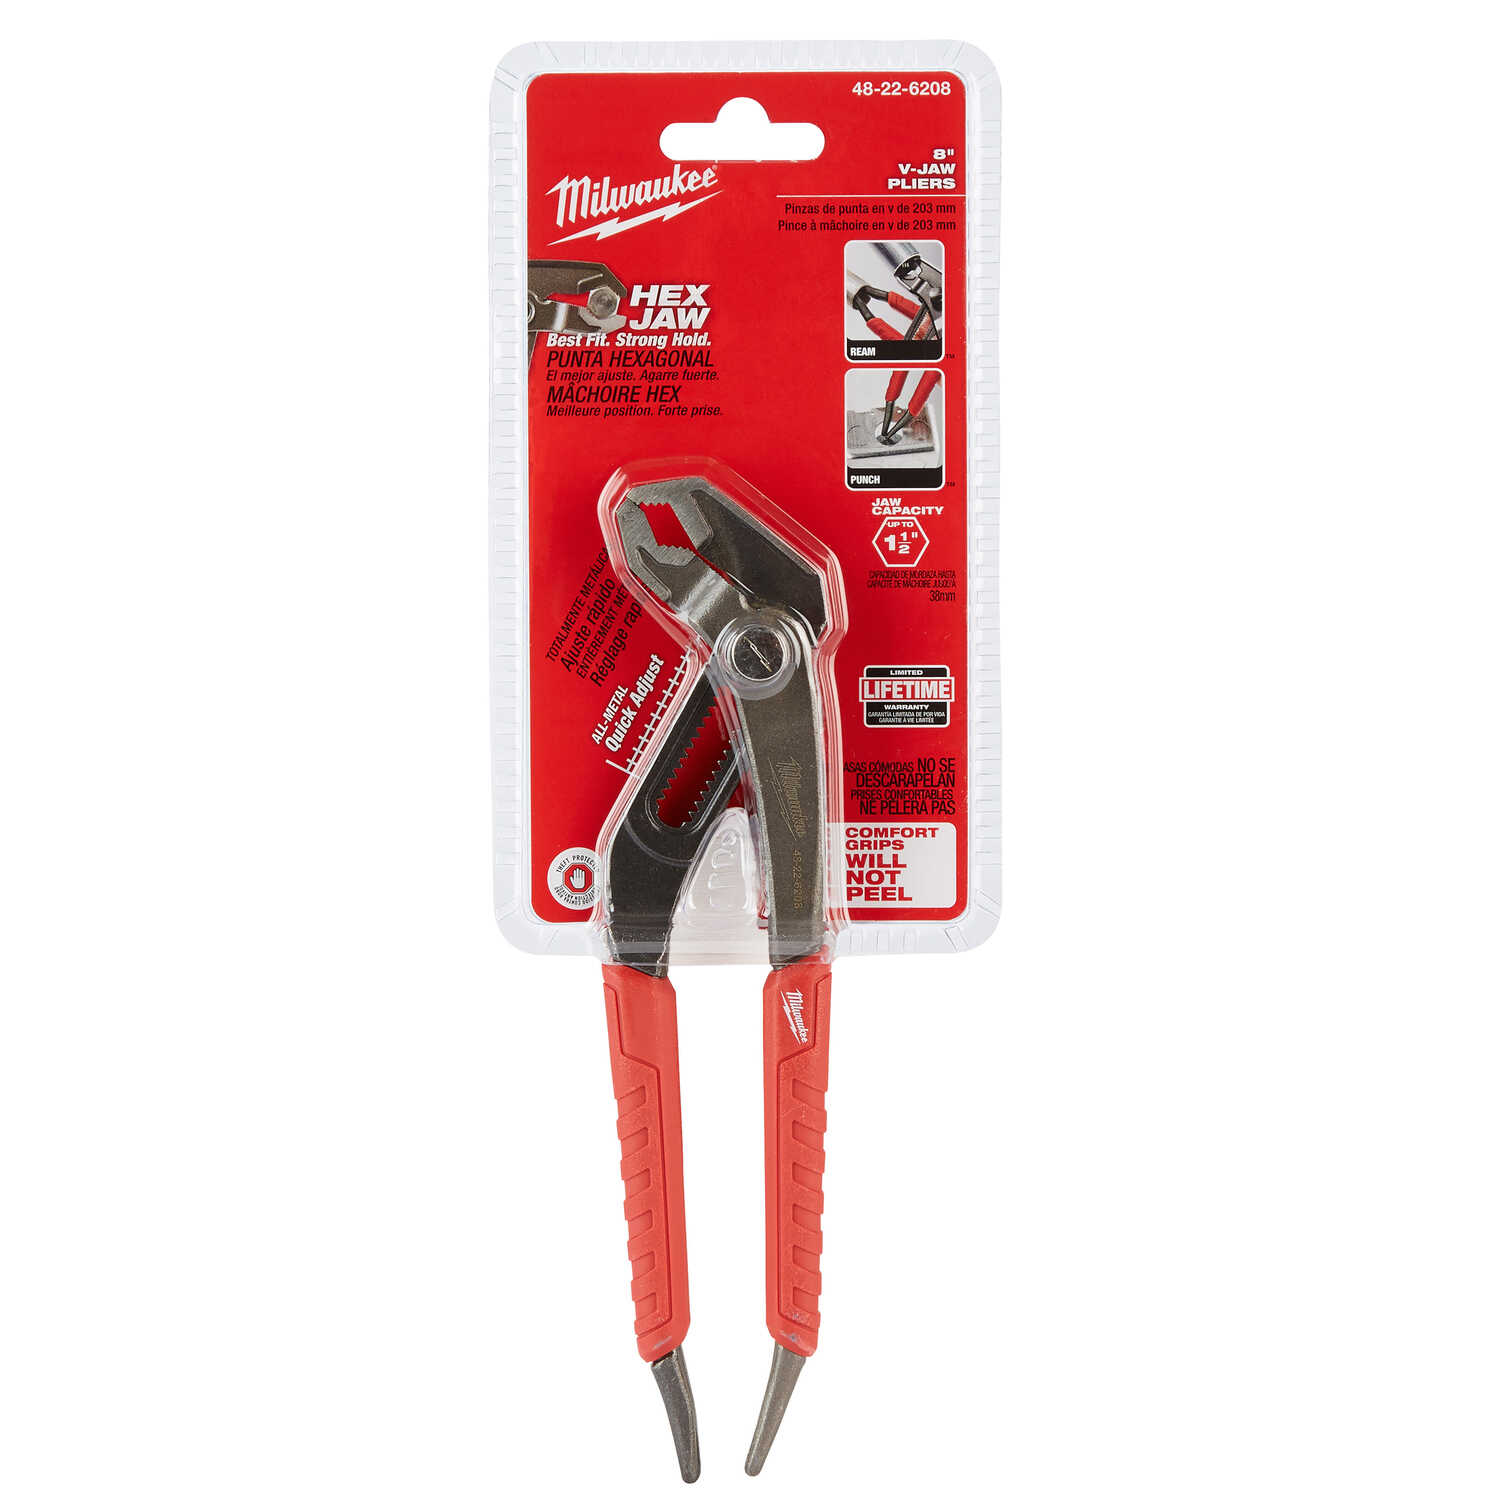 Milwaukee  REAM & PUNCH  8 in. Forged Alloy Steel  Slip Joint Pliers  Red  1 pk